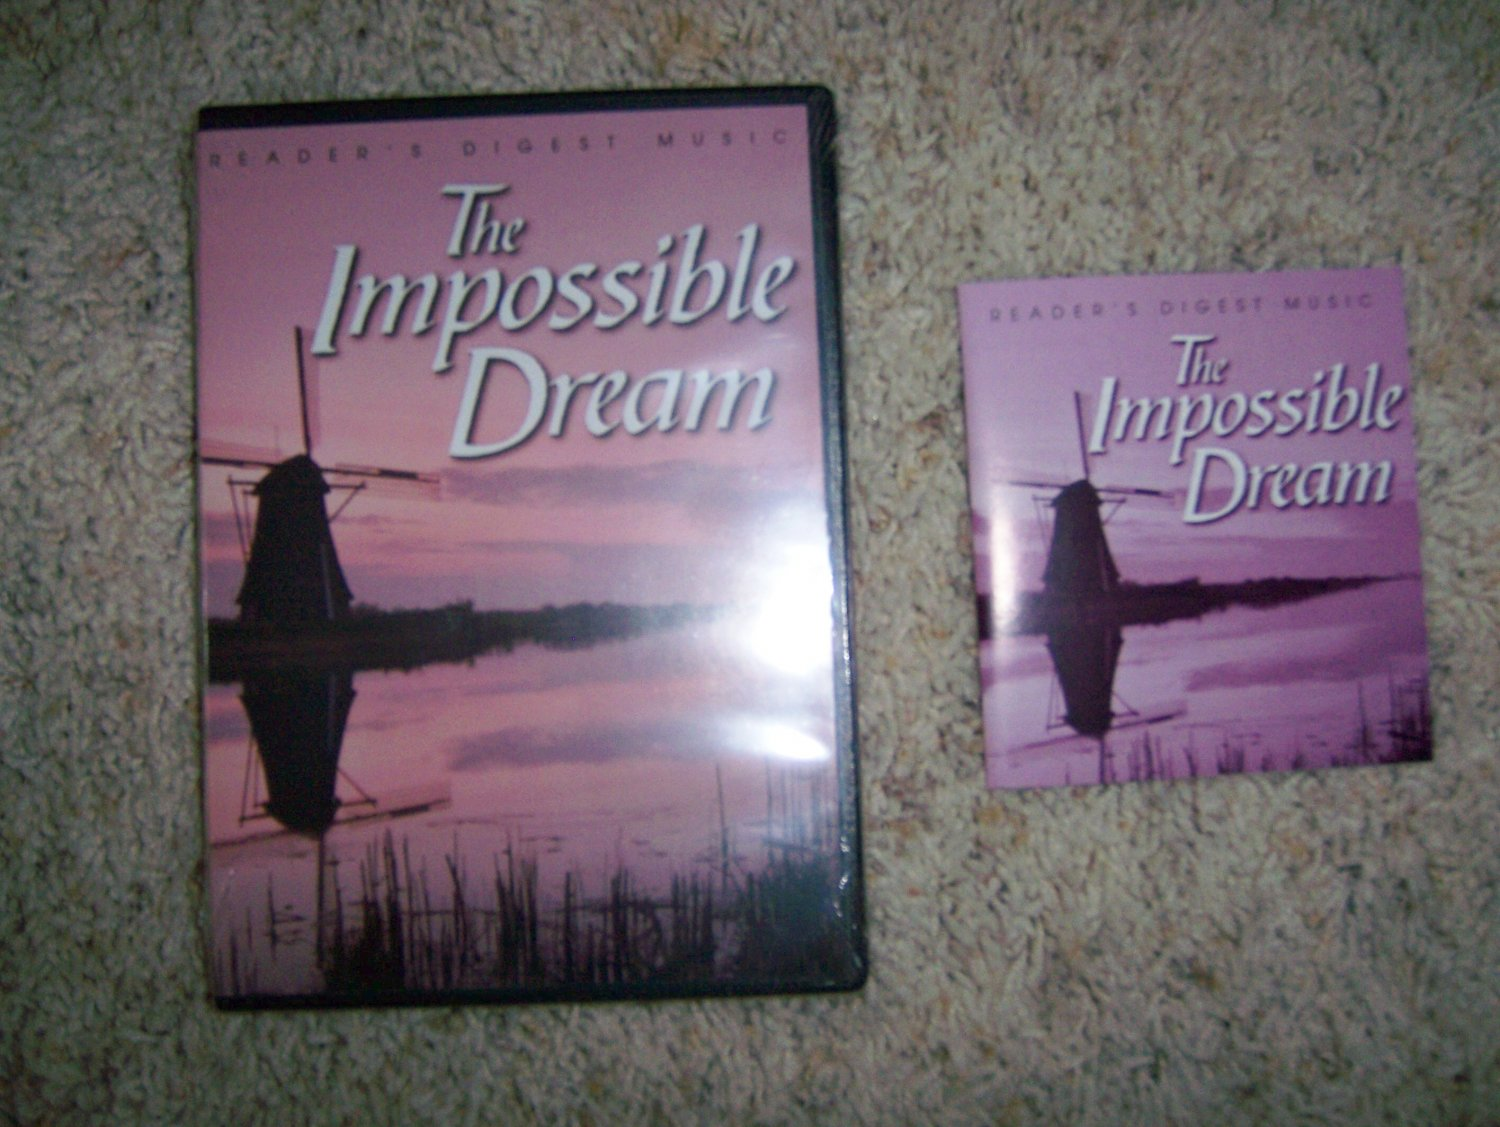 Impossible Dream75 Great Songs On CD  BNK935